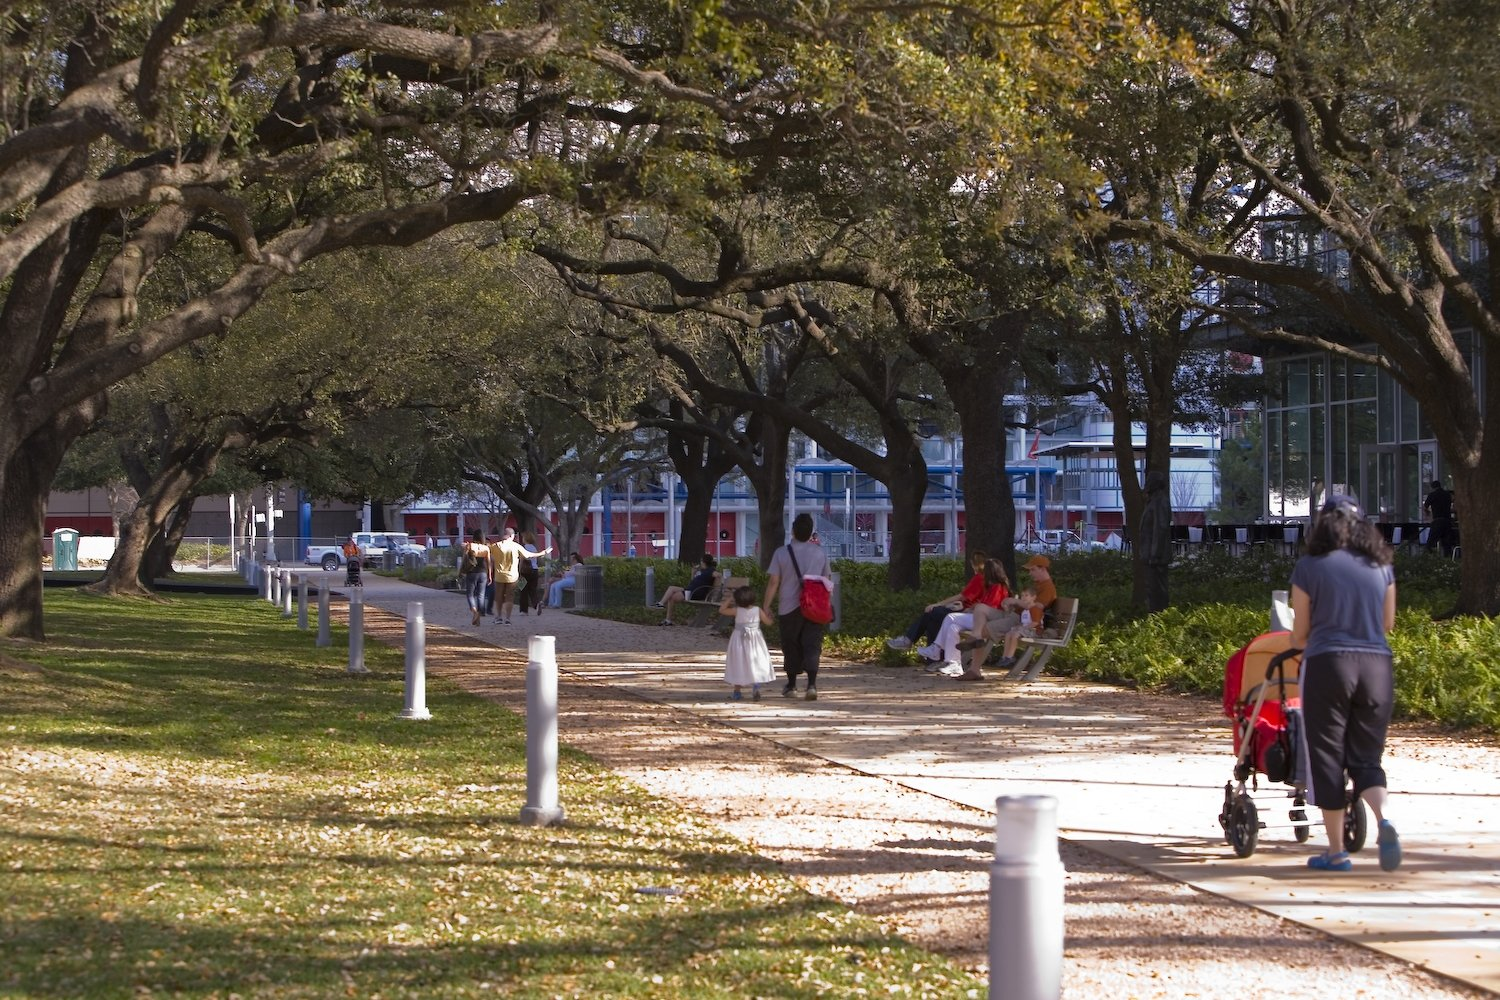 In addition to walking paths, Houston's downtown park Discovery Green offers an array of activities, from free yoga and Pilates classes to concerts and performances to a playground for kids and a man-made pond for steering electric boats. Visit Discovery Green online at discoverygreen.com  Photo 6 of 17 in Houston, Texas